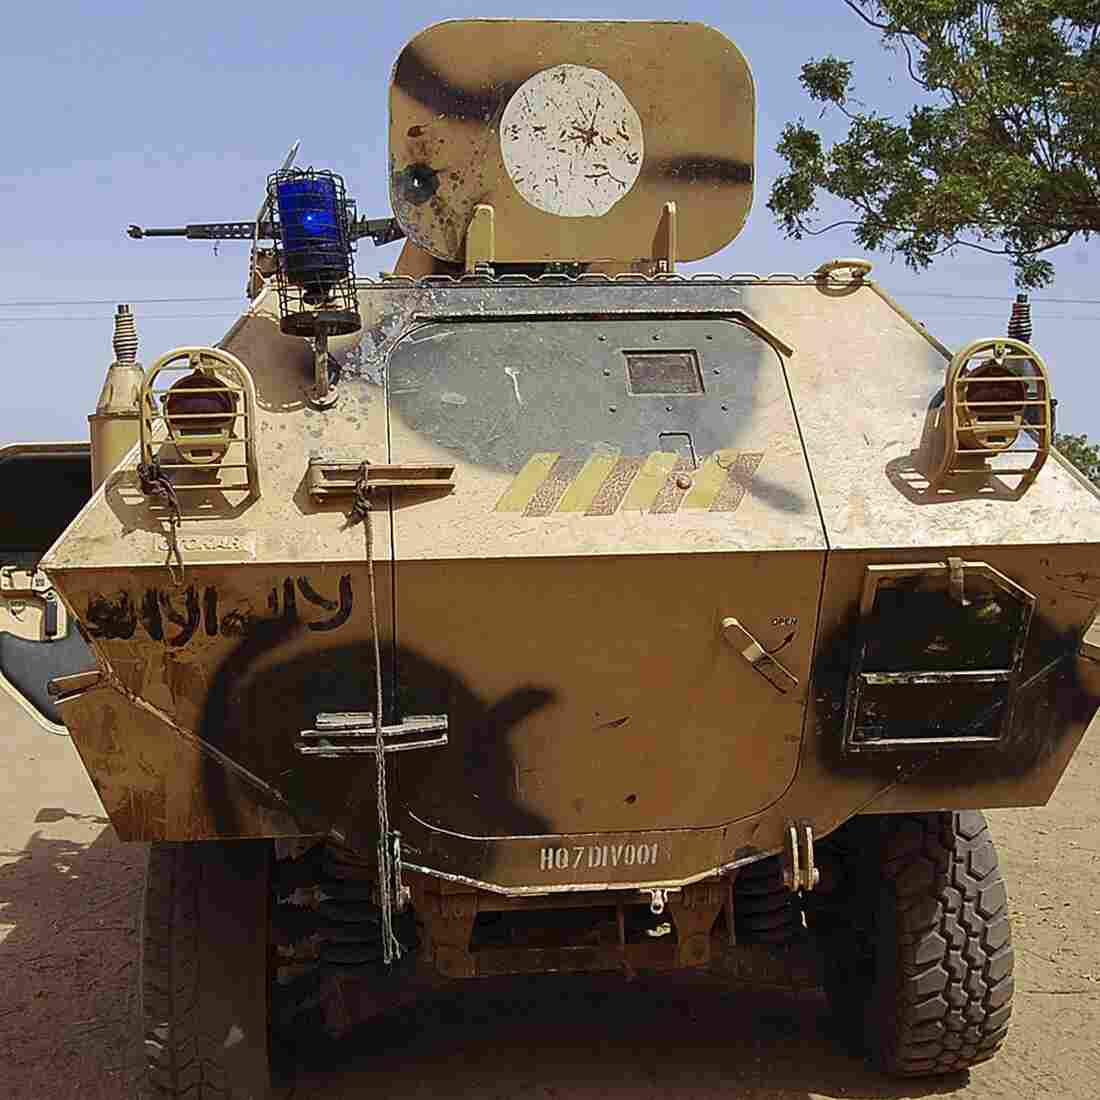 Boko Haram Ventures Out Of Nigeria, Hitting Village In Chad